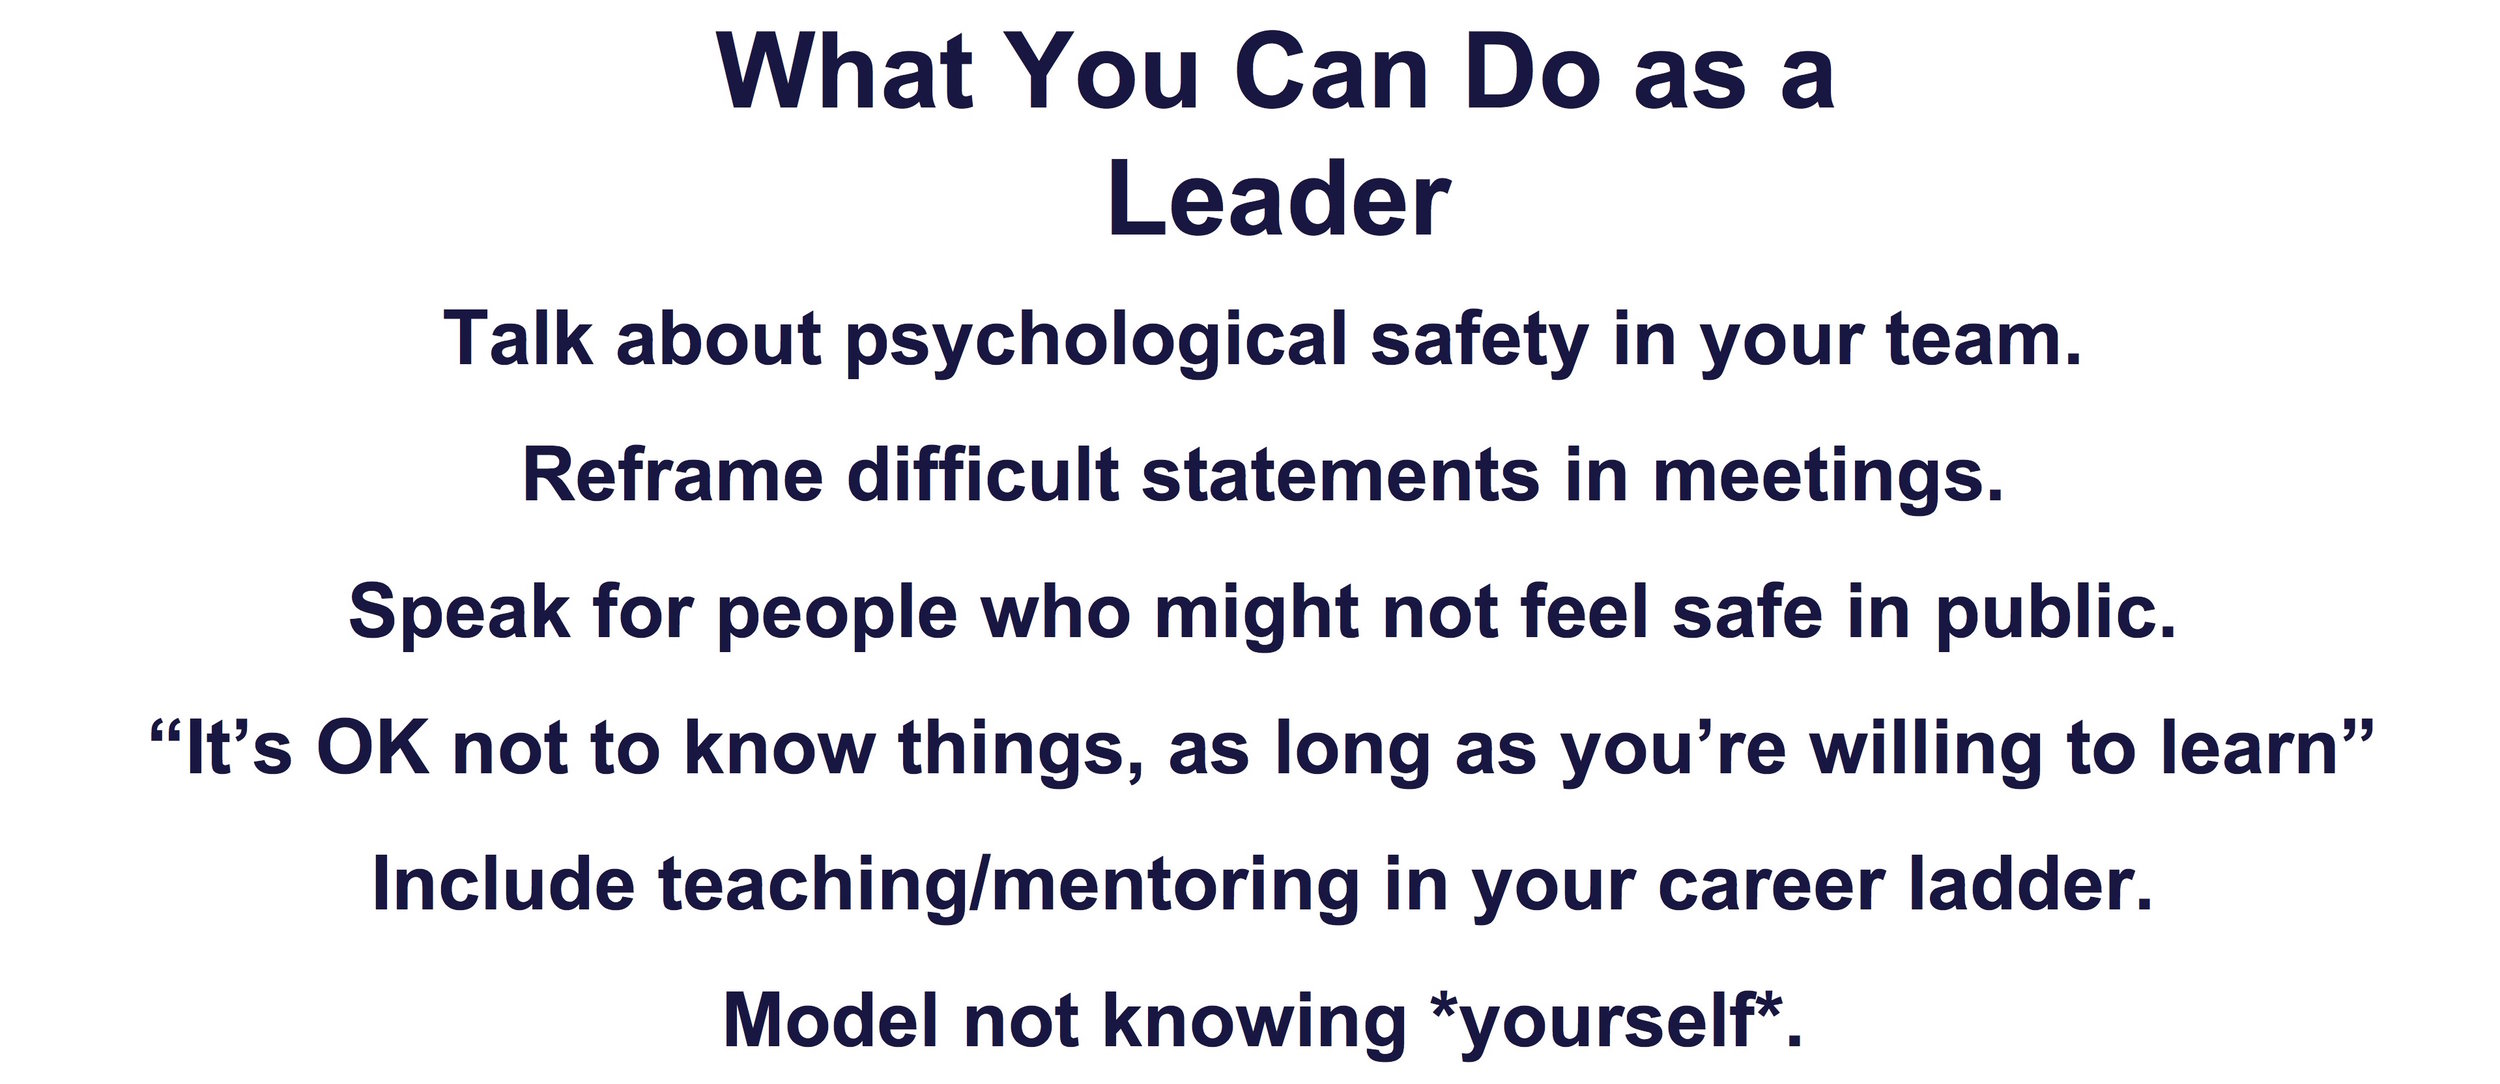 what-to-do-as-a-leader-slide.jpg